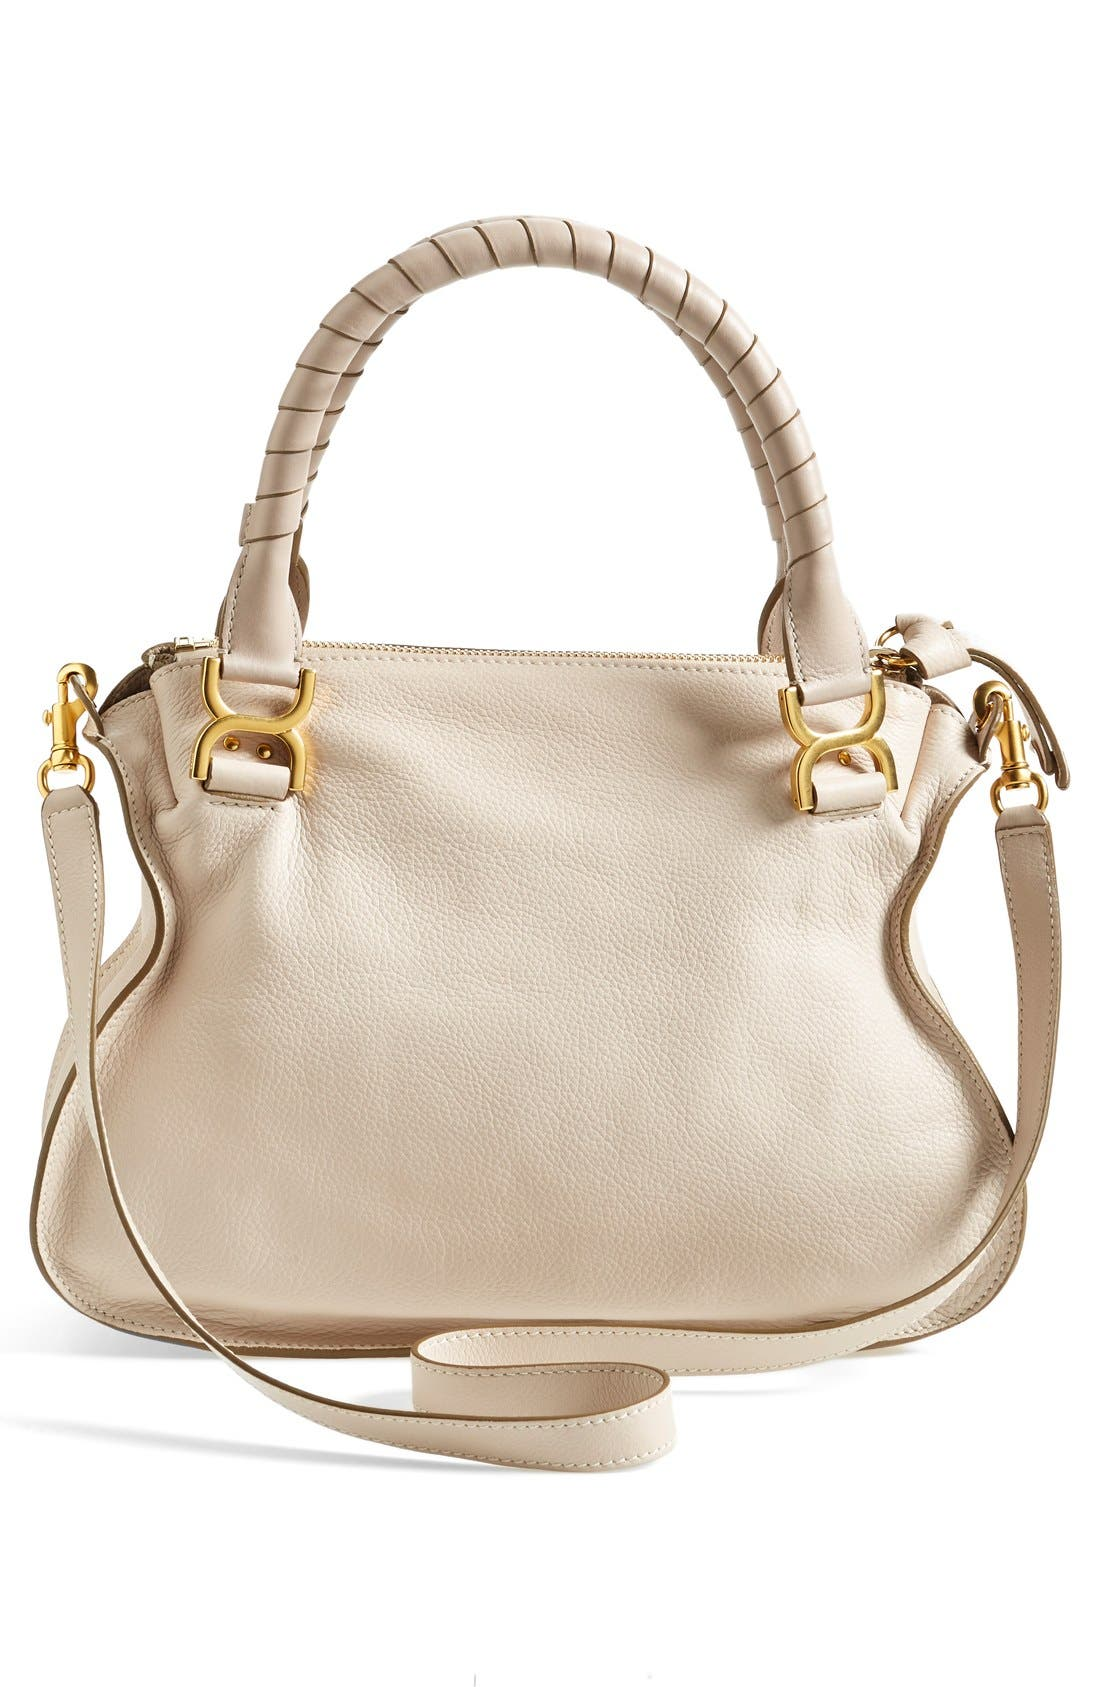 Alternate Image 3  - Chloé 'Medium Marcie' Leather Satchel